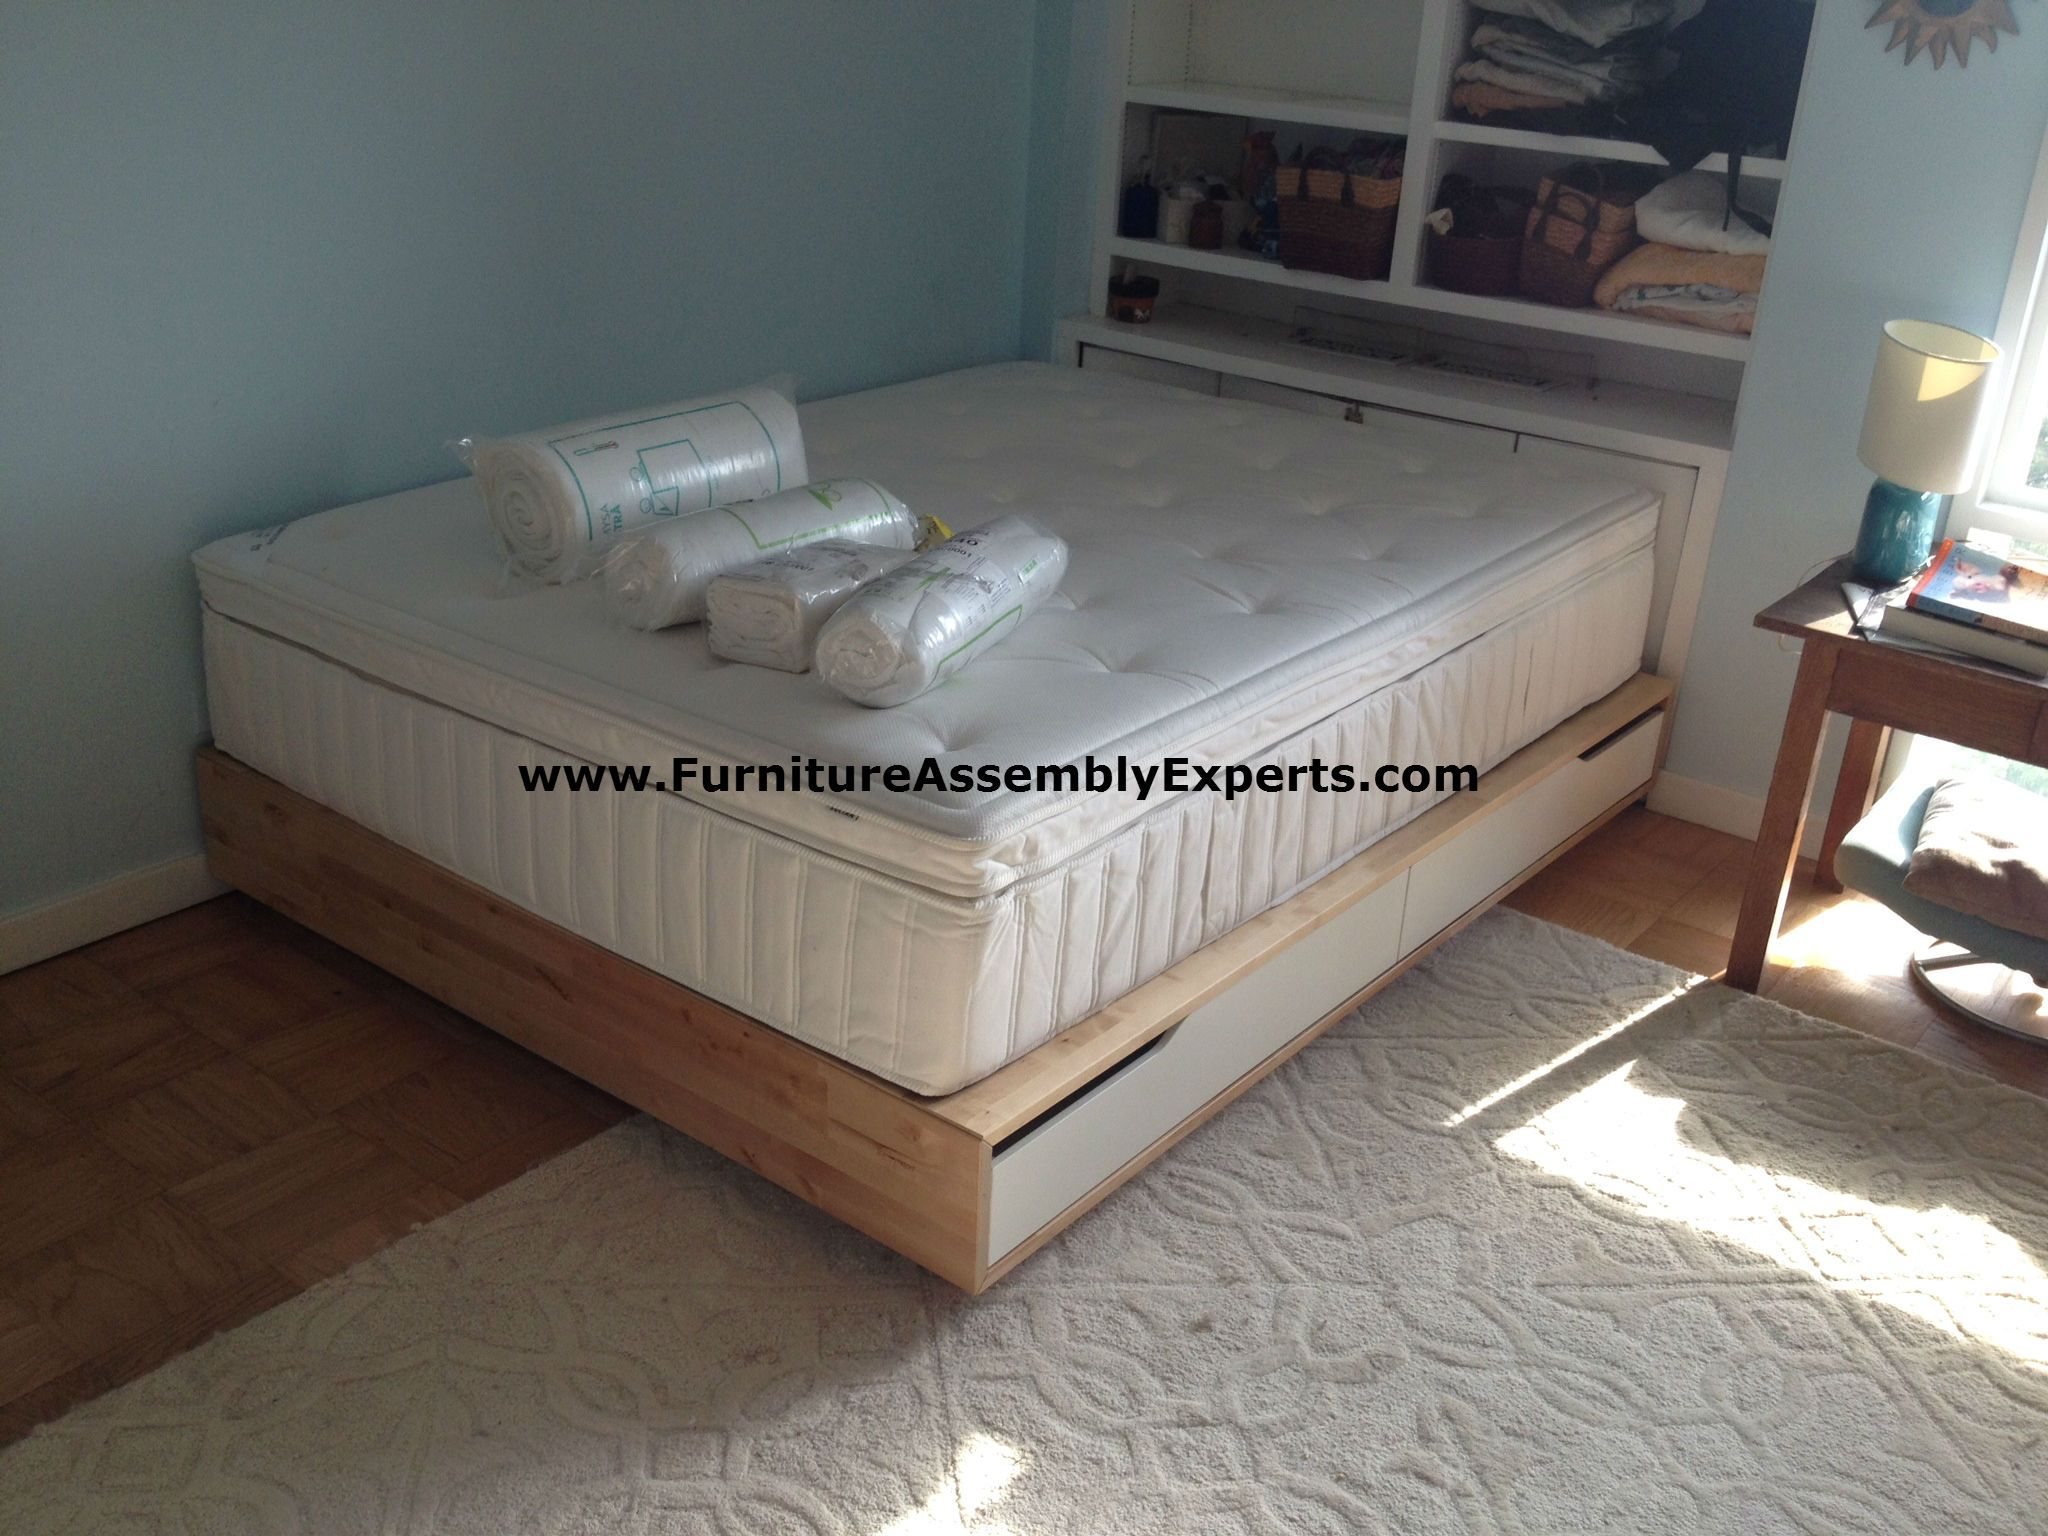 Ikea Manda Storage Bed Assembled At Hodge On 7th St Apartments In  Washington DC By Furniture